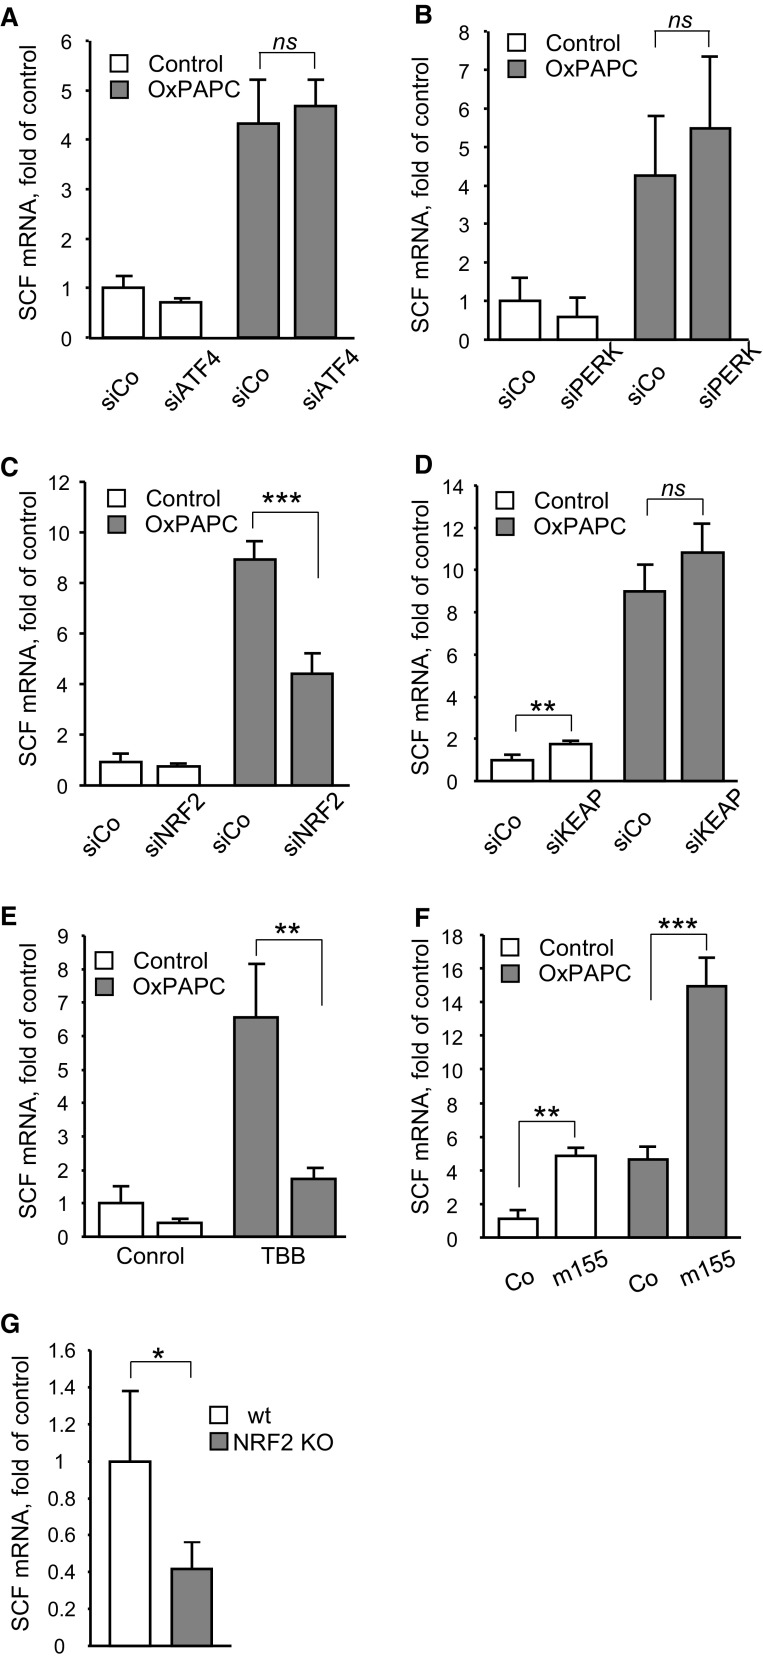 Induction of SCF by OxPAPC depends on the transcription factor NRF2. a , b , c and d HUVECs were transfected with siRNAs targeting ATF4 ( a ), PERK ( b ), NRF2 ( c ), or KEAP ( d ). Twenty-four hours after transfection cells were stimulated with OxPAPC (100 µg/ml, 6 h). Levels of SCF mRNA were analyzed by qRT-PCR in total RNA prepared using Trizol reagent and normalized to β2-microglobulin mRNA. e Protein kinase CK2 inhibitor TBB attenuates induction of SCF by OxPAPC. Cells were pretreated with TBB (20 µM, 30 min) and thereafter stimulated with OxPAPC (100 µg/ml, 6 h); SCF mRNA was quantified as described above. f miR-155 potentiates induction of SCF by OxPAPC. HUVECs were transfected with the RNA oligonucleotide mimicking miR-155 for 24 h and stimulated by OxPAPC (100 µg/ml, 6 h). Levels of SCF mRNA were quantified by qRT-PCR. g Steady-state levels of SCF mRNA are decreased in aortas of NRF2 − / − mice. Total RNA was prepared from aortas of 6 months old NRF2 − / − or wild-type mice and analyzed by qRT-PCR method. The levels of NRF2 mRNA were normalized to β2-microglobulin mRNA